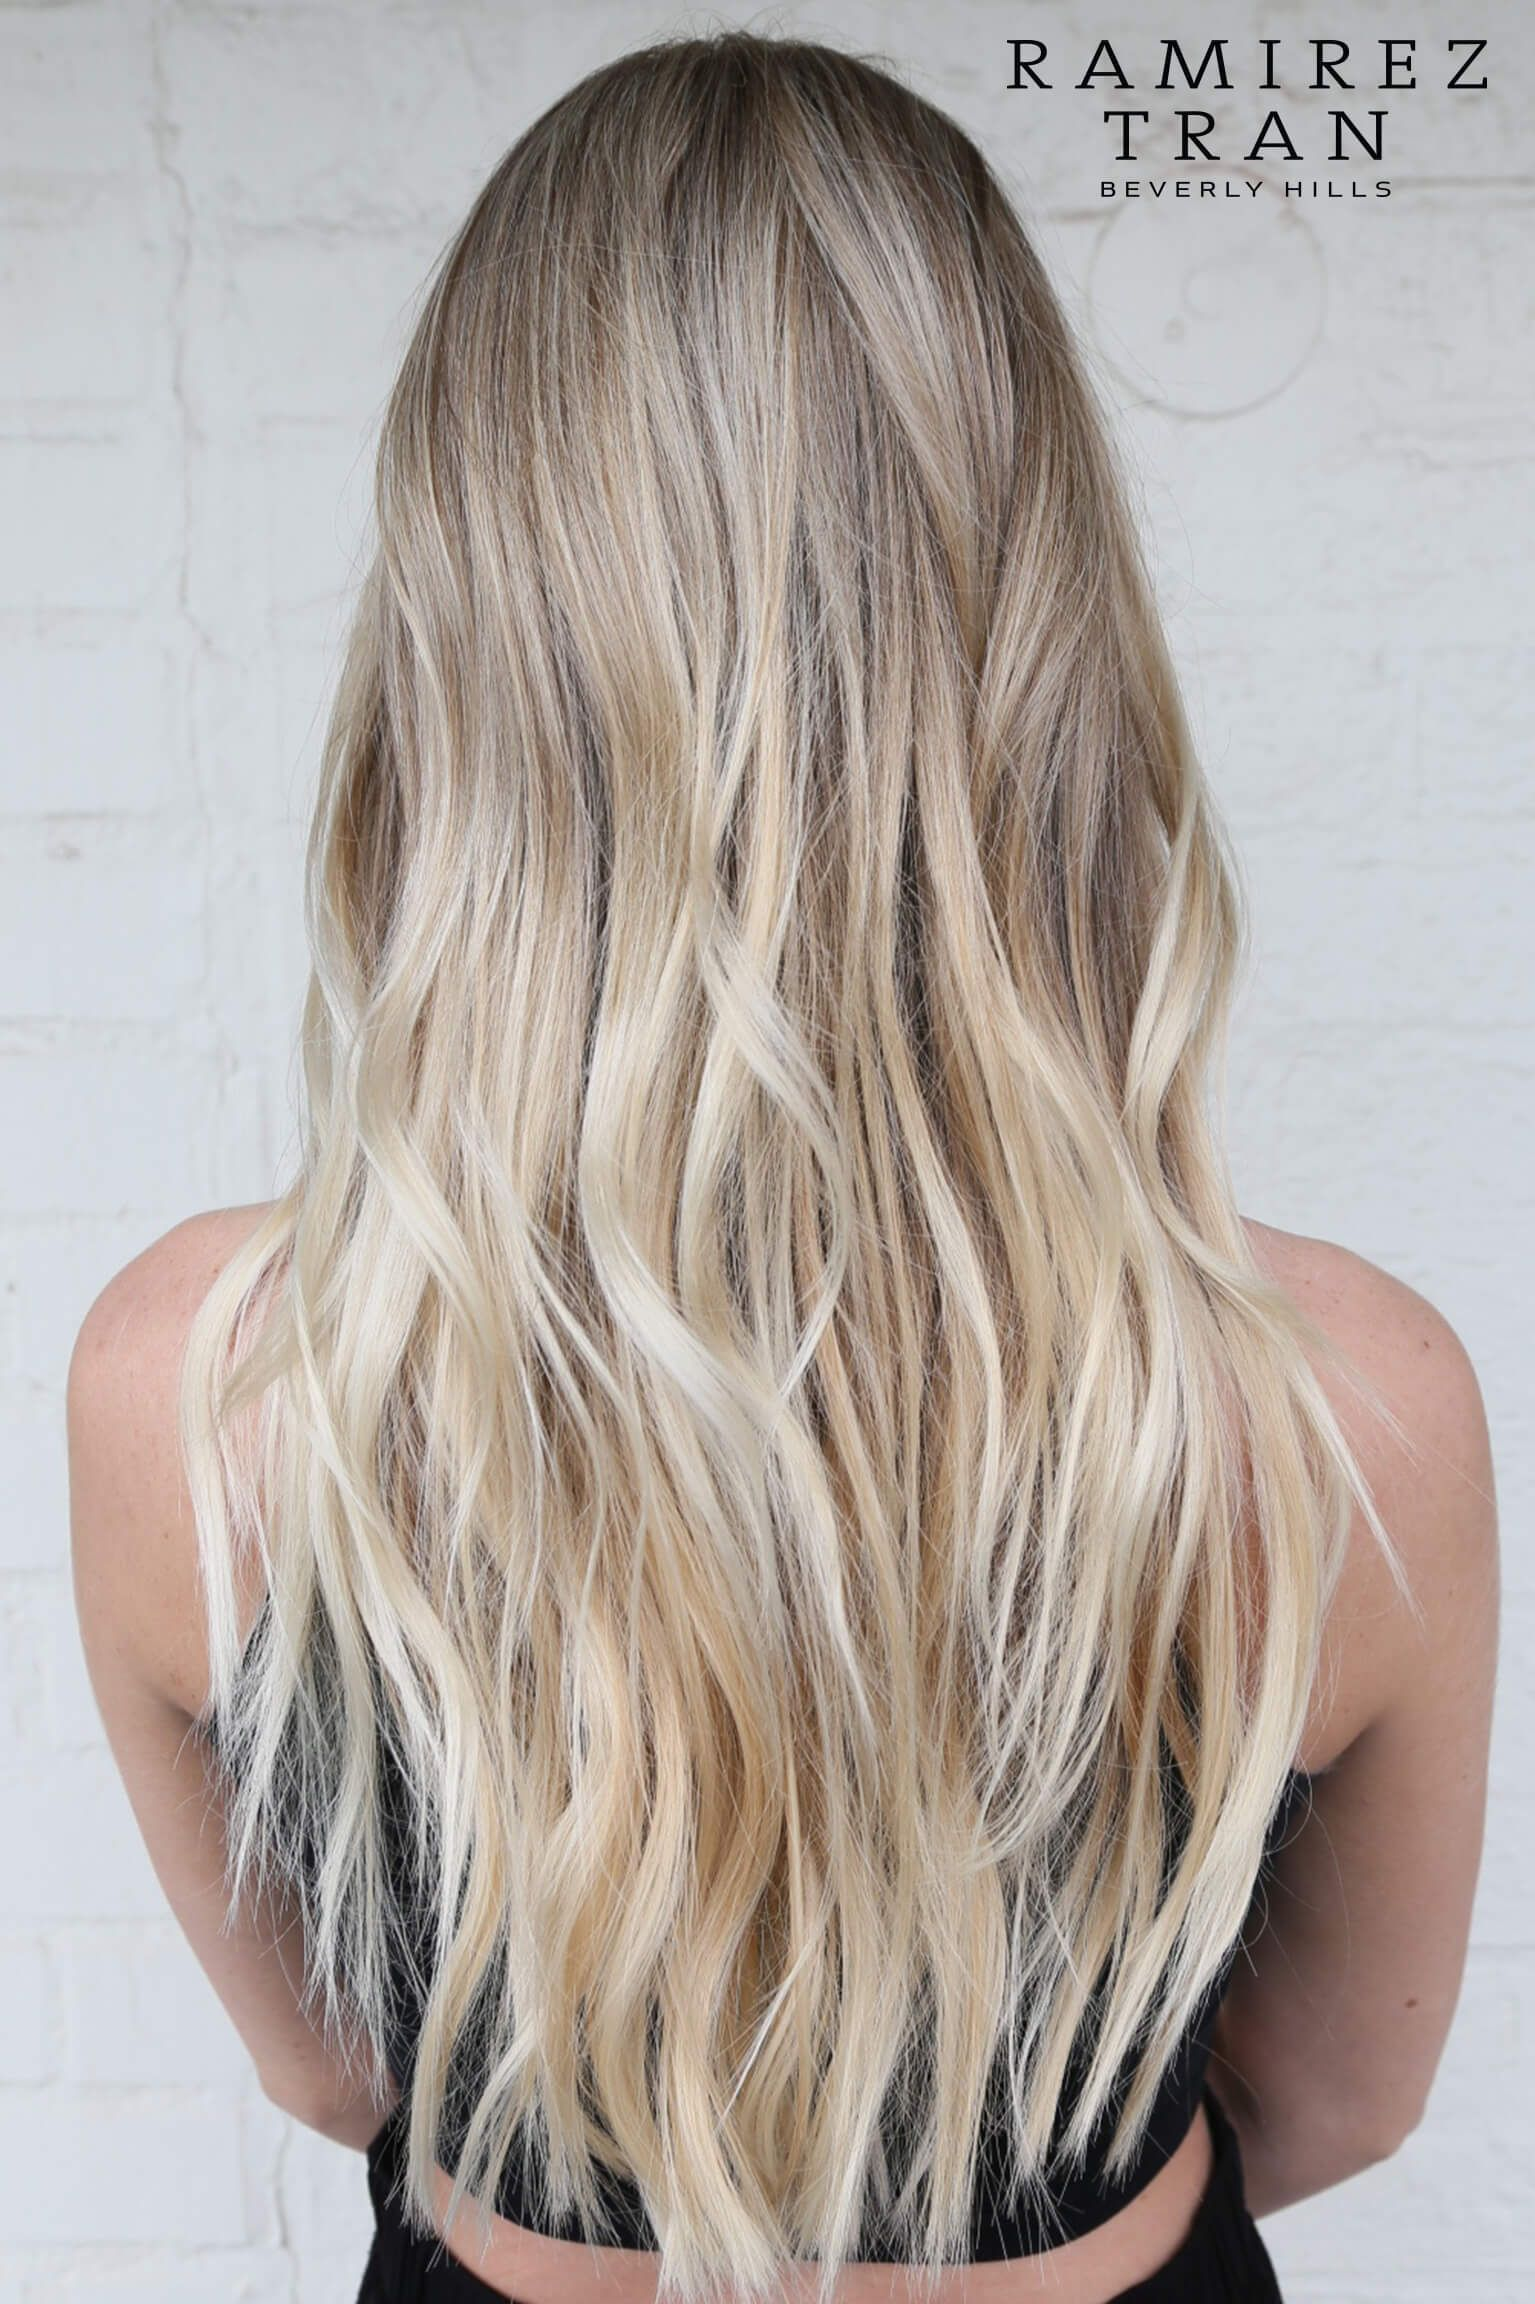 bombshell blonde balayage hairstyles that are cute and easy